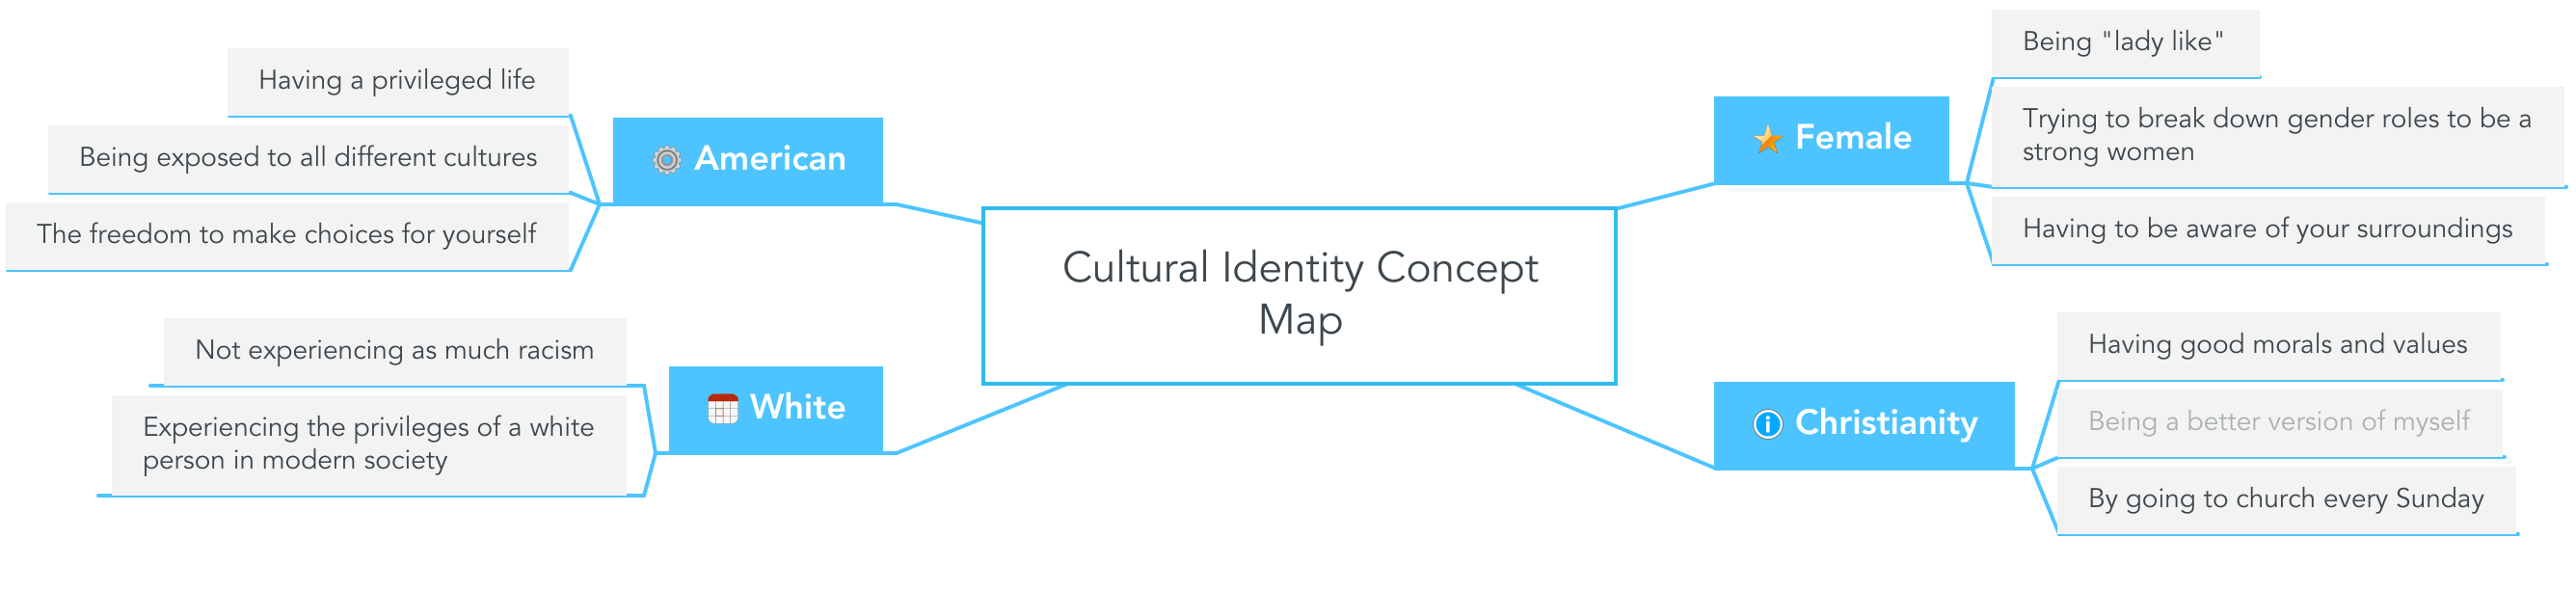 Cultural Identity Concept Map | MindMeister Mind Map